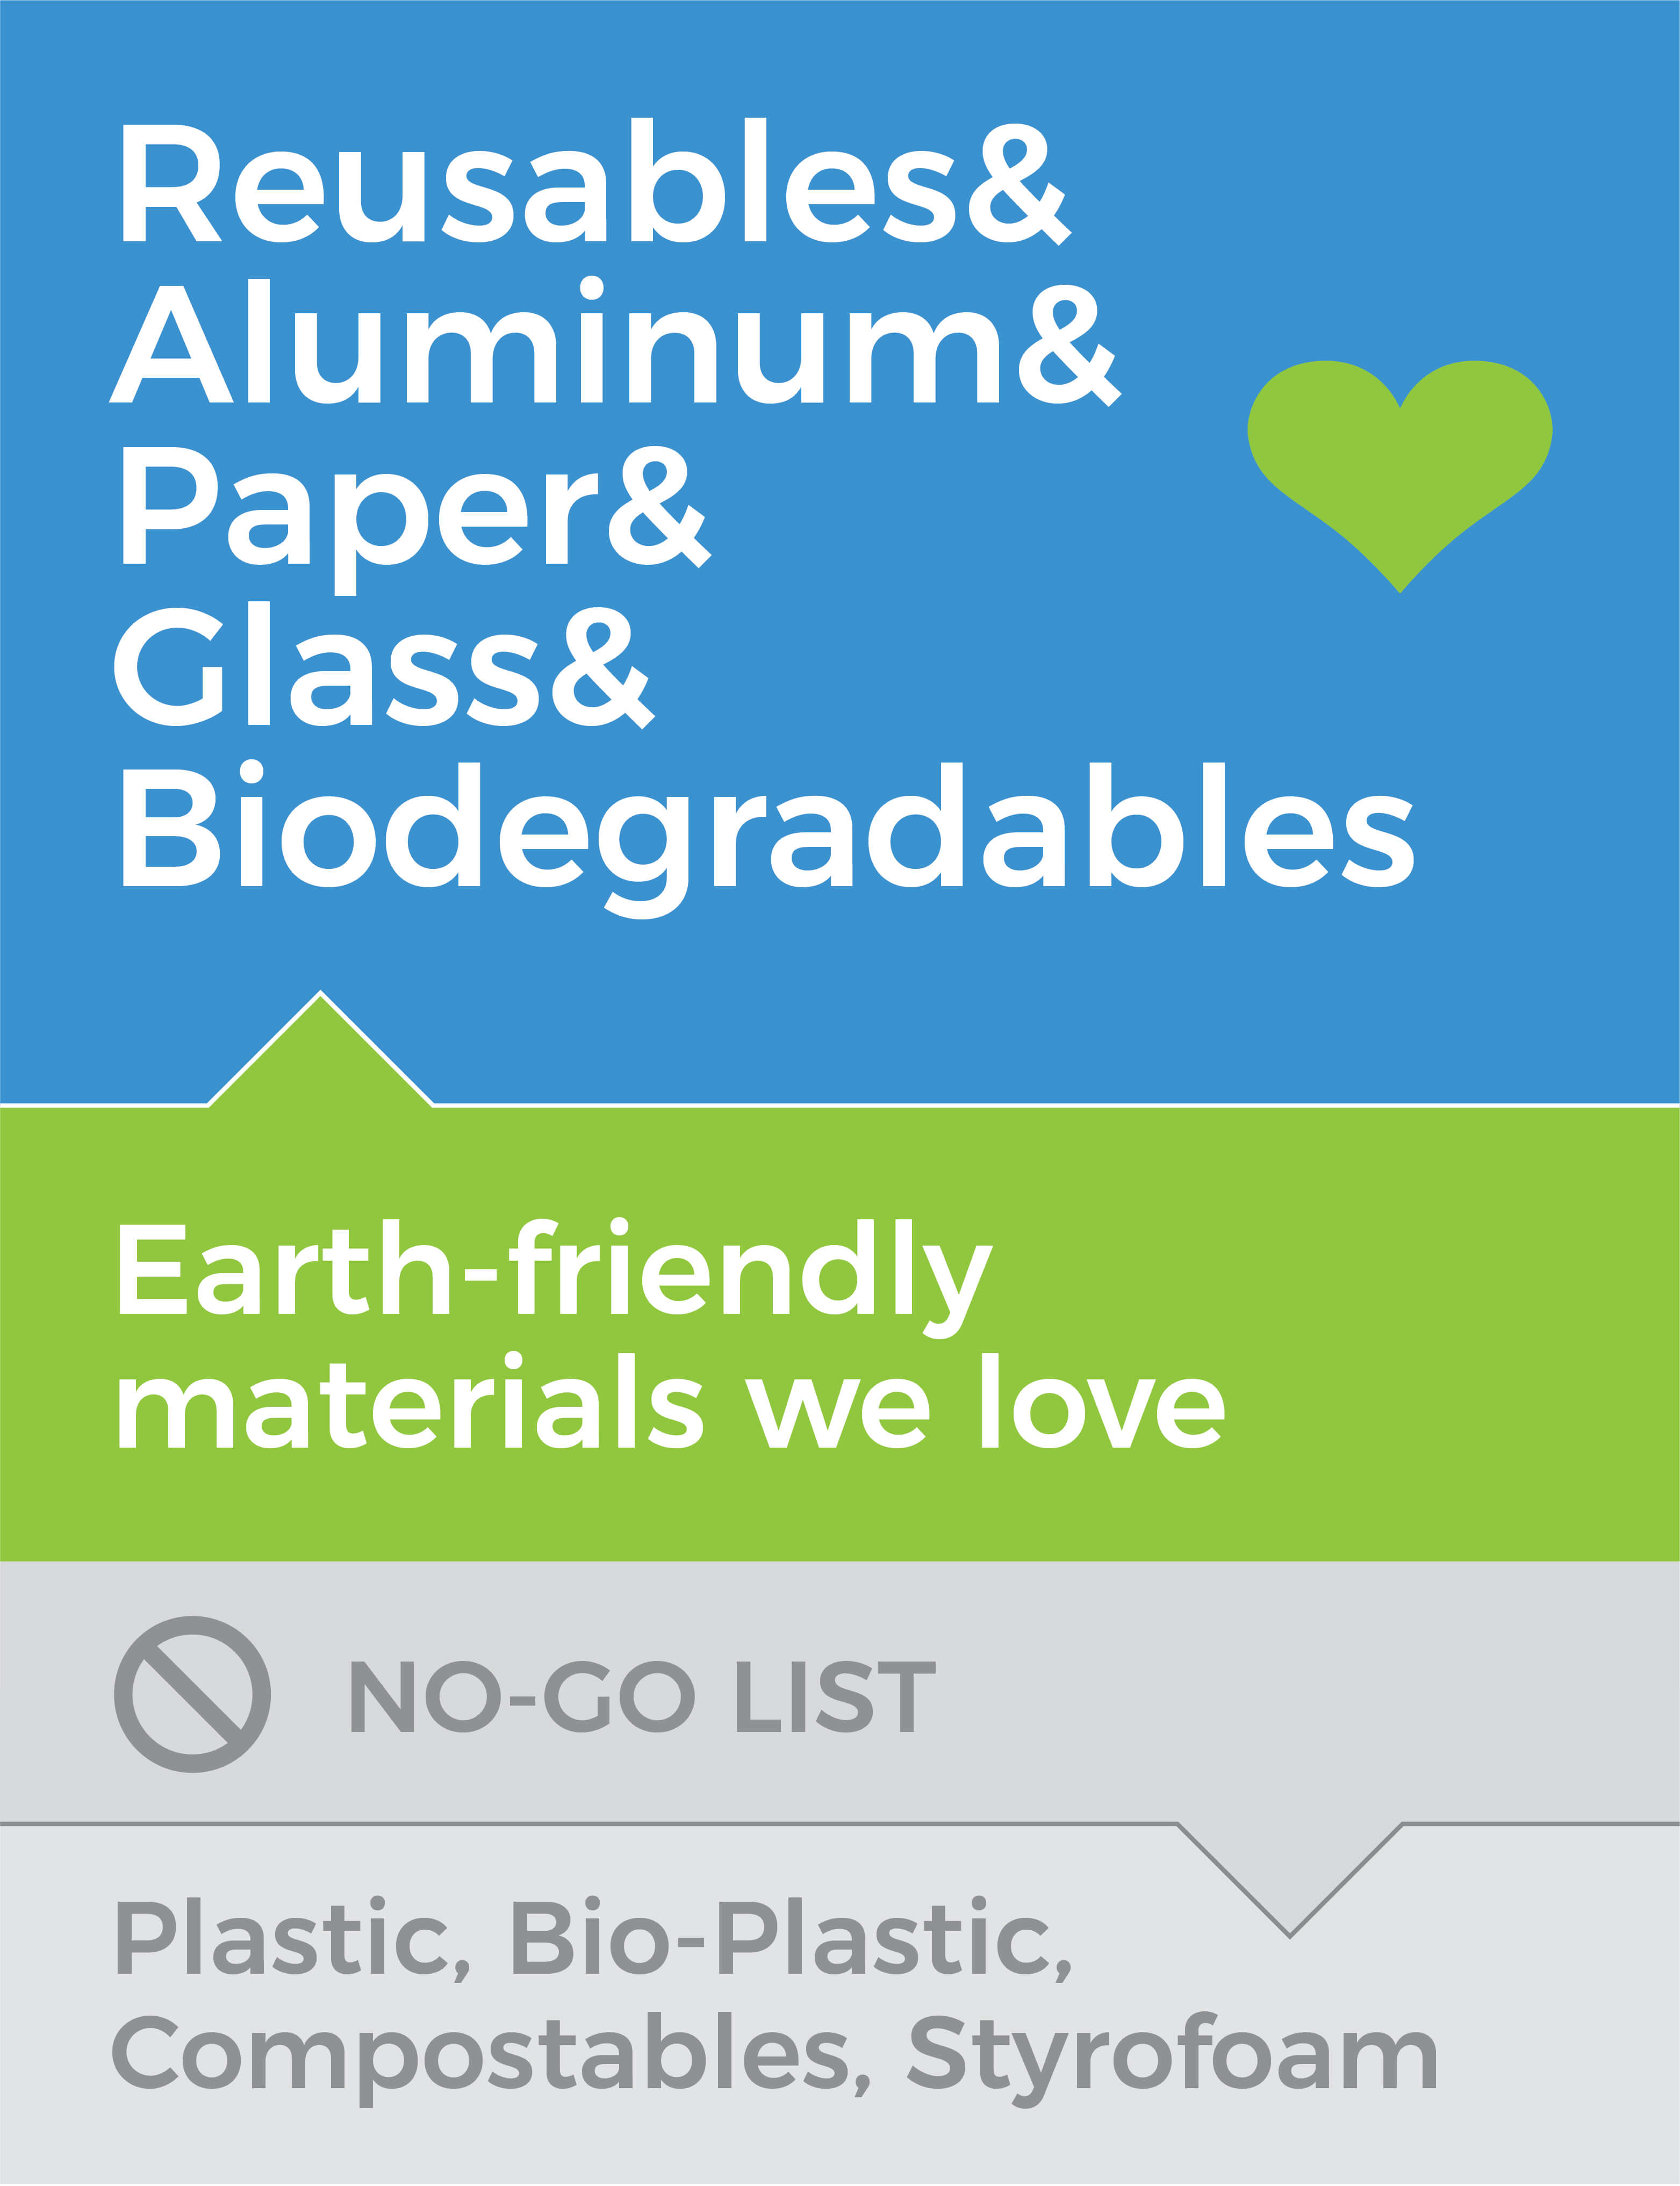 Earth-friendly materials we love: Reusables & Aluminum & Glass & Biodegradables. No-go list: Bio-plastics, Compostables and Styrofoam